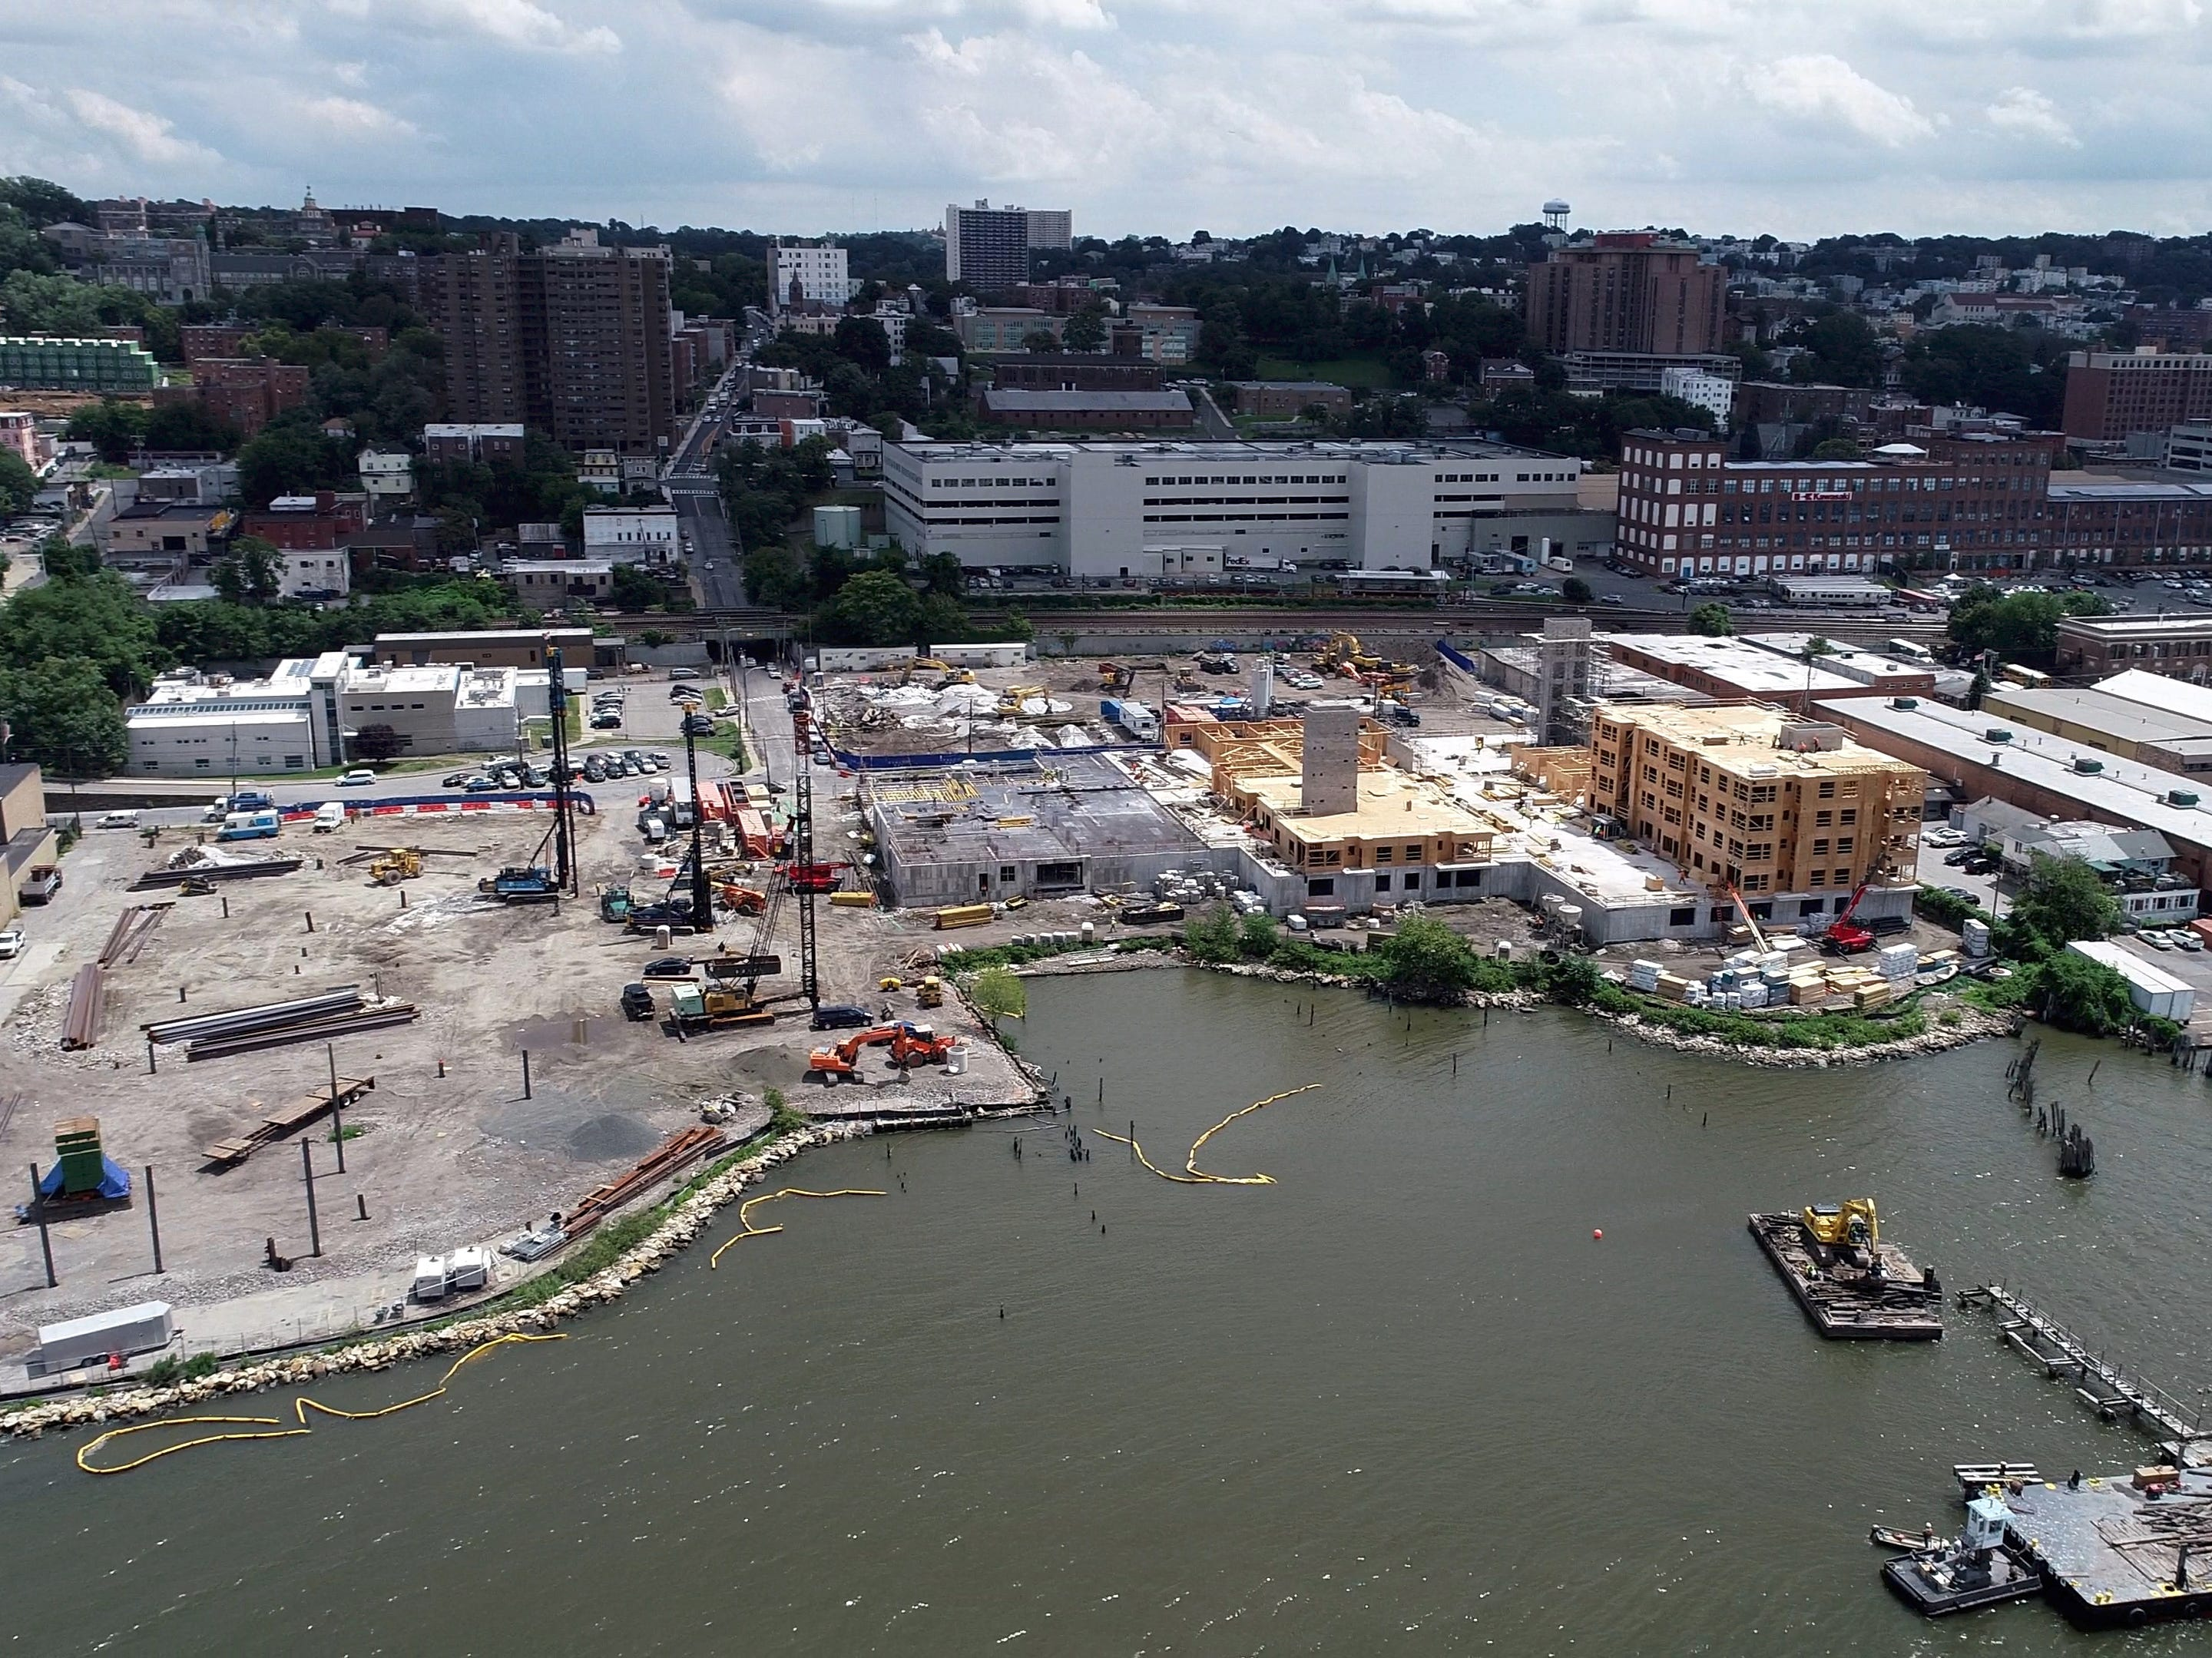 The Avalon Bay development site in Yonkers Aug. 2, 2018.